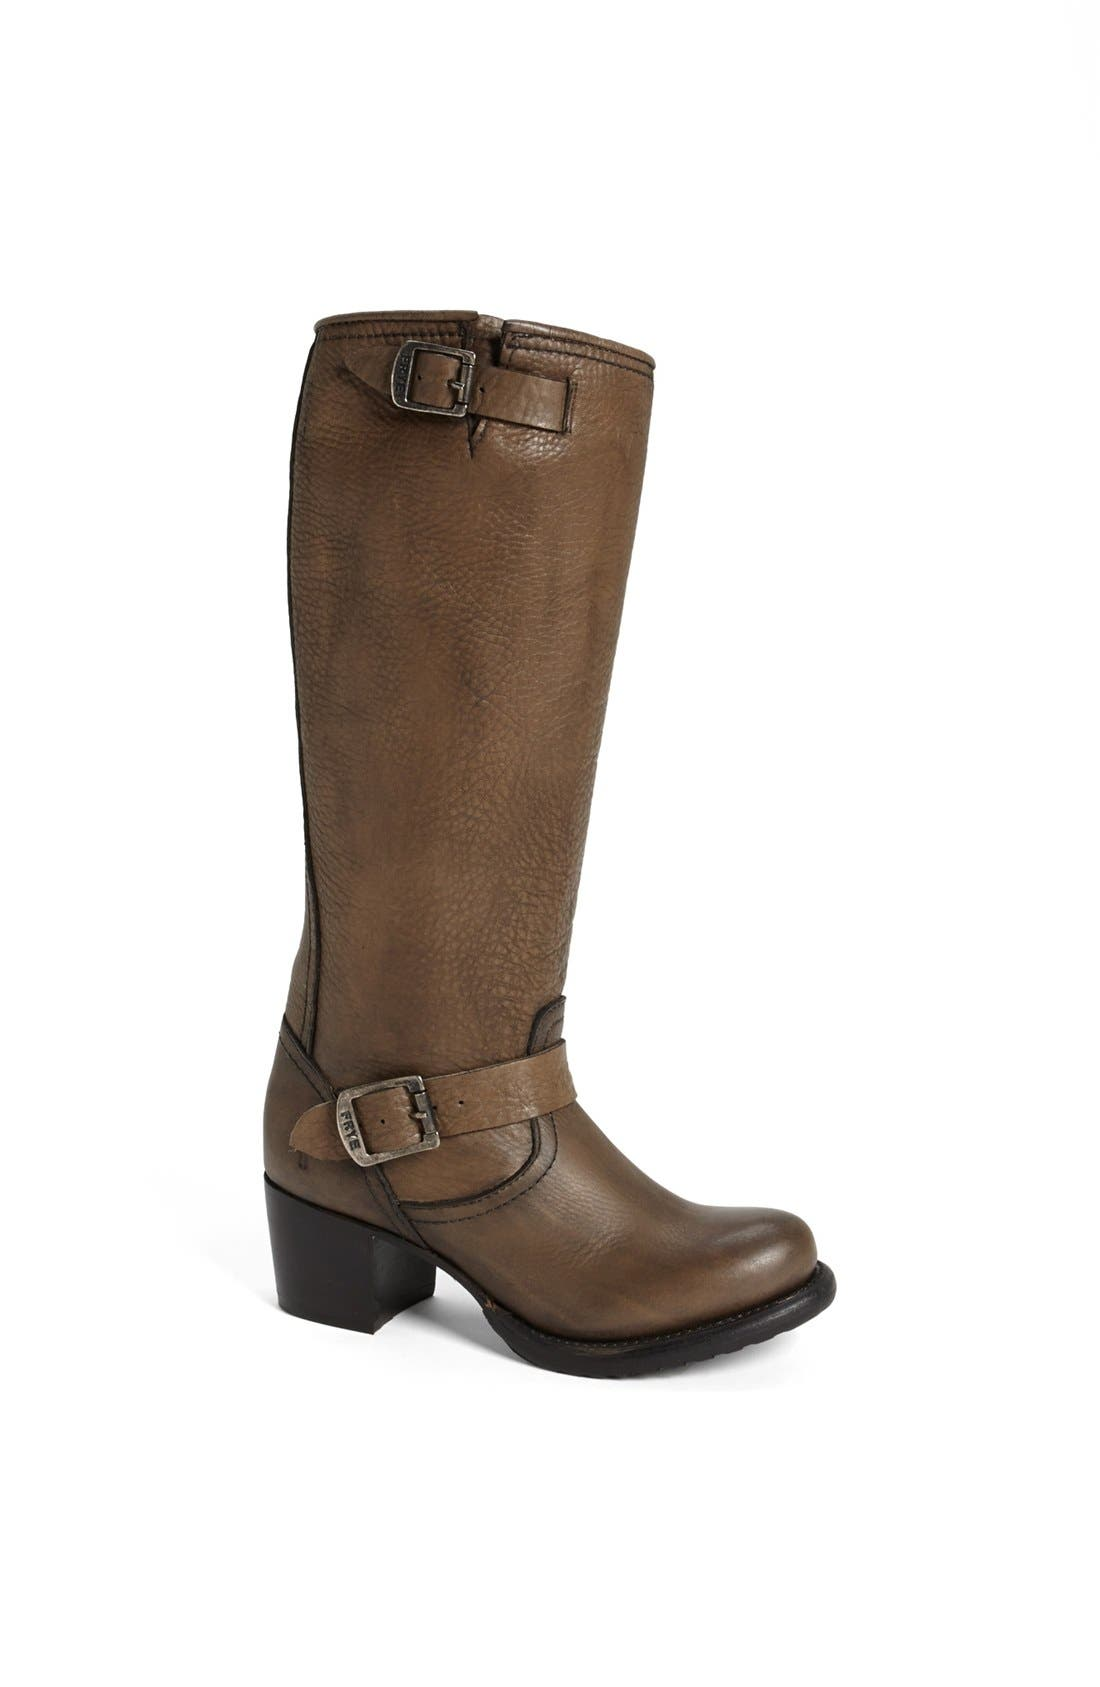 Alternate Image 1 Selected - Frye 'Vera' Slouch Boot